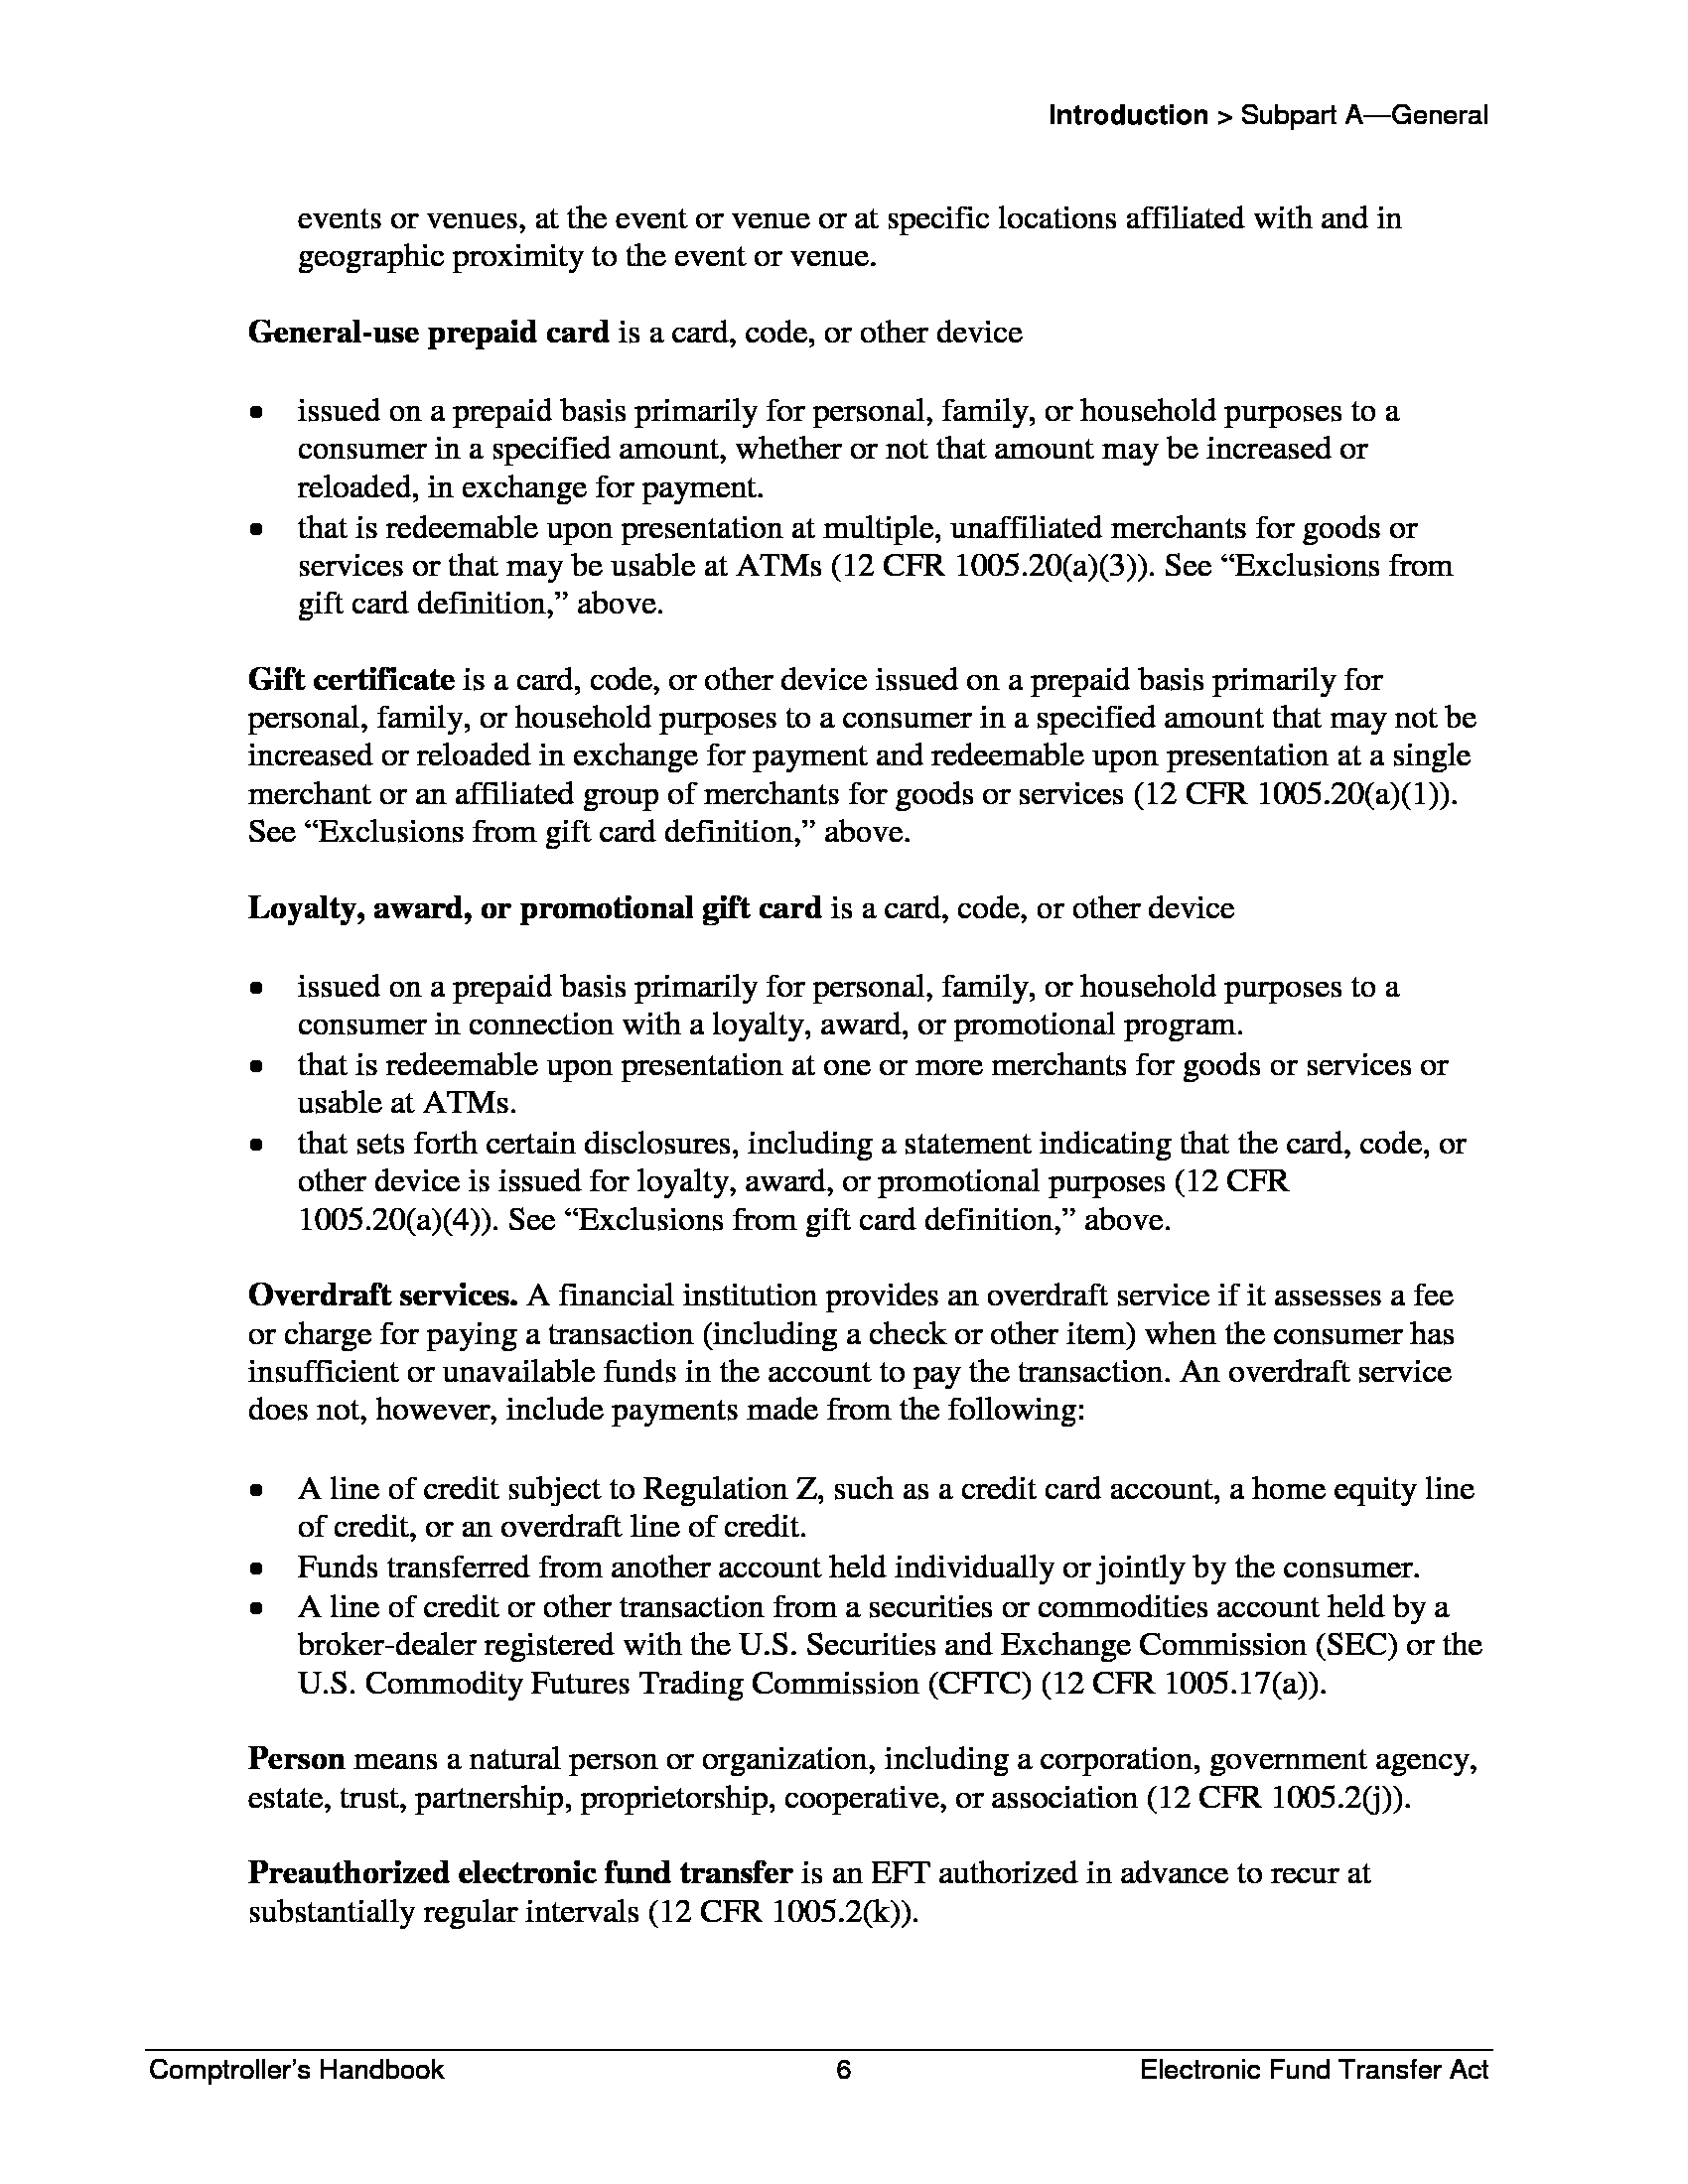 advisorselect - electronic fund transfer act, comptroller's handbook